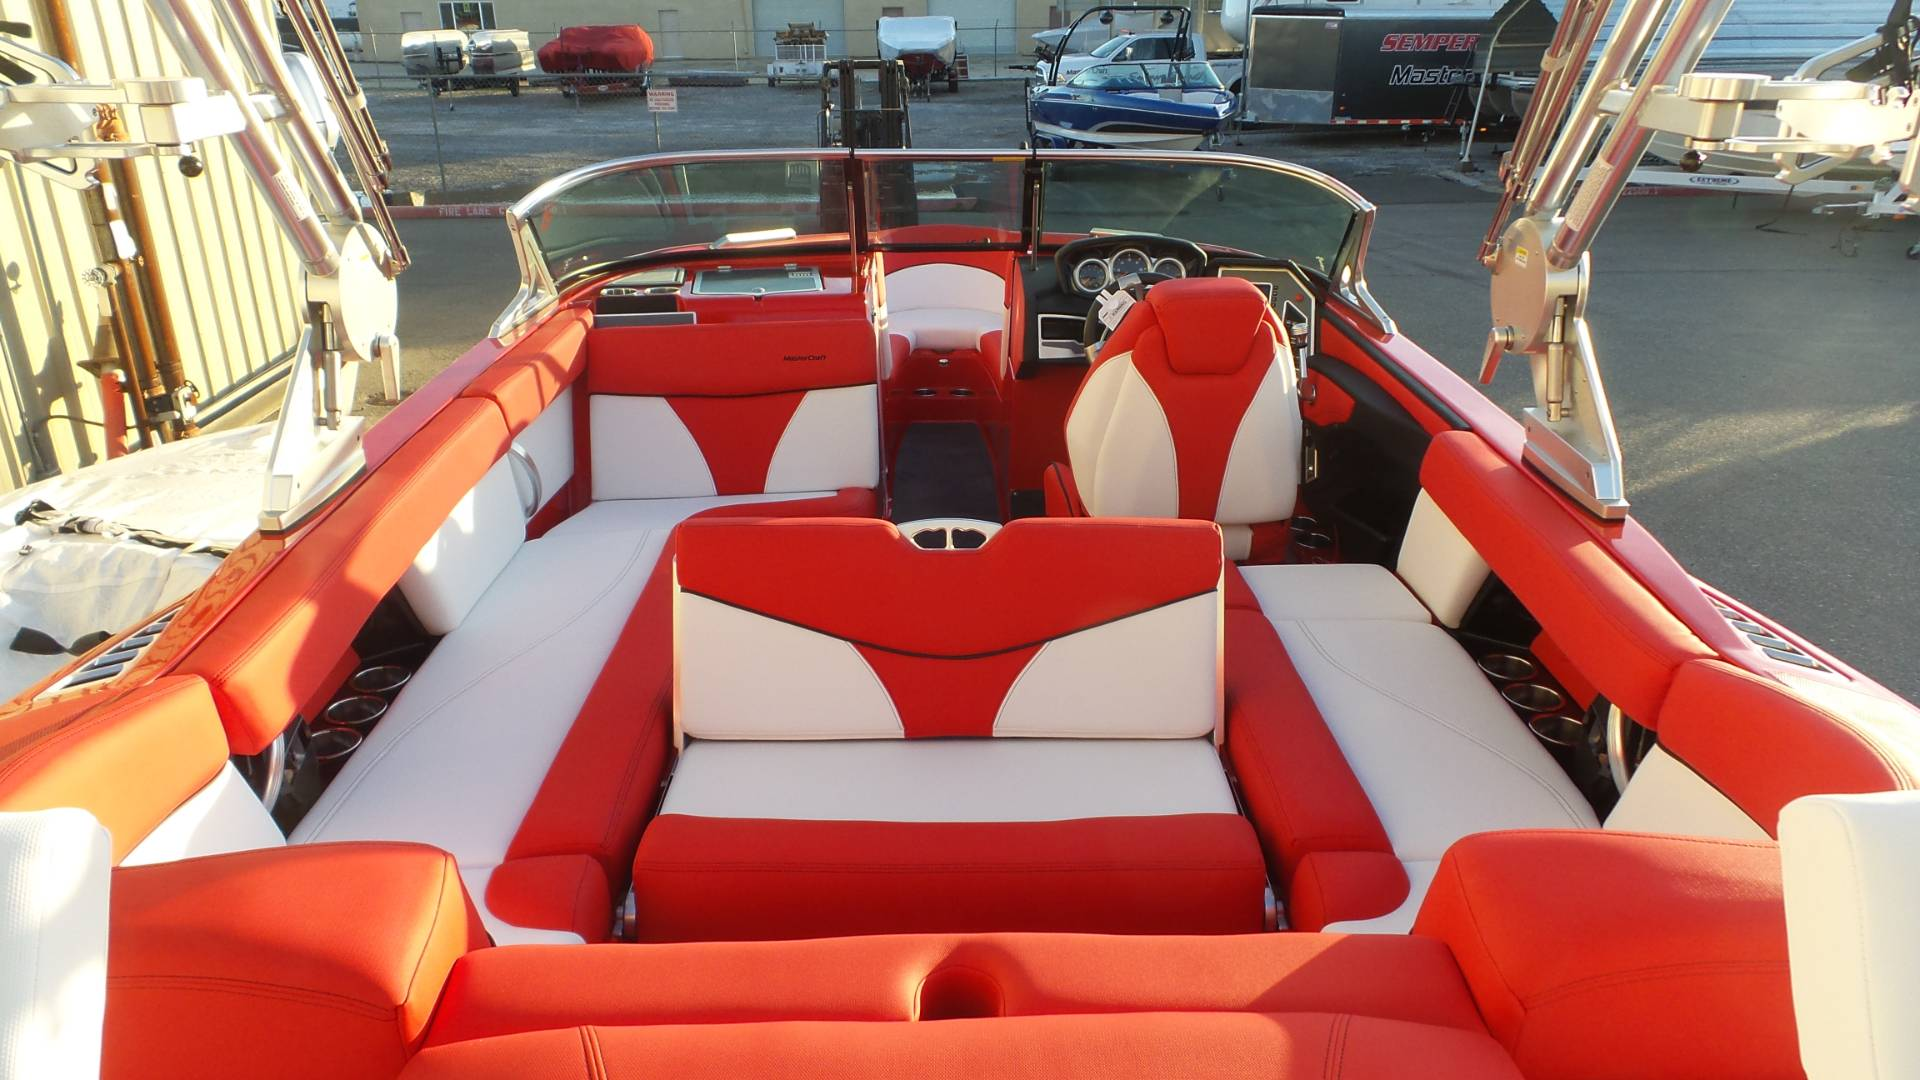 2018 Mastercraft XT23 in Madera, California - Photo 5